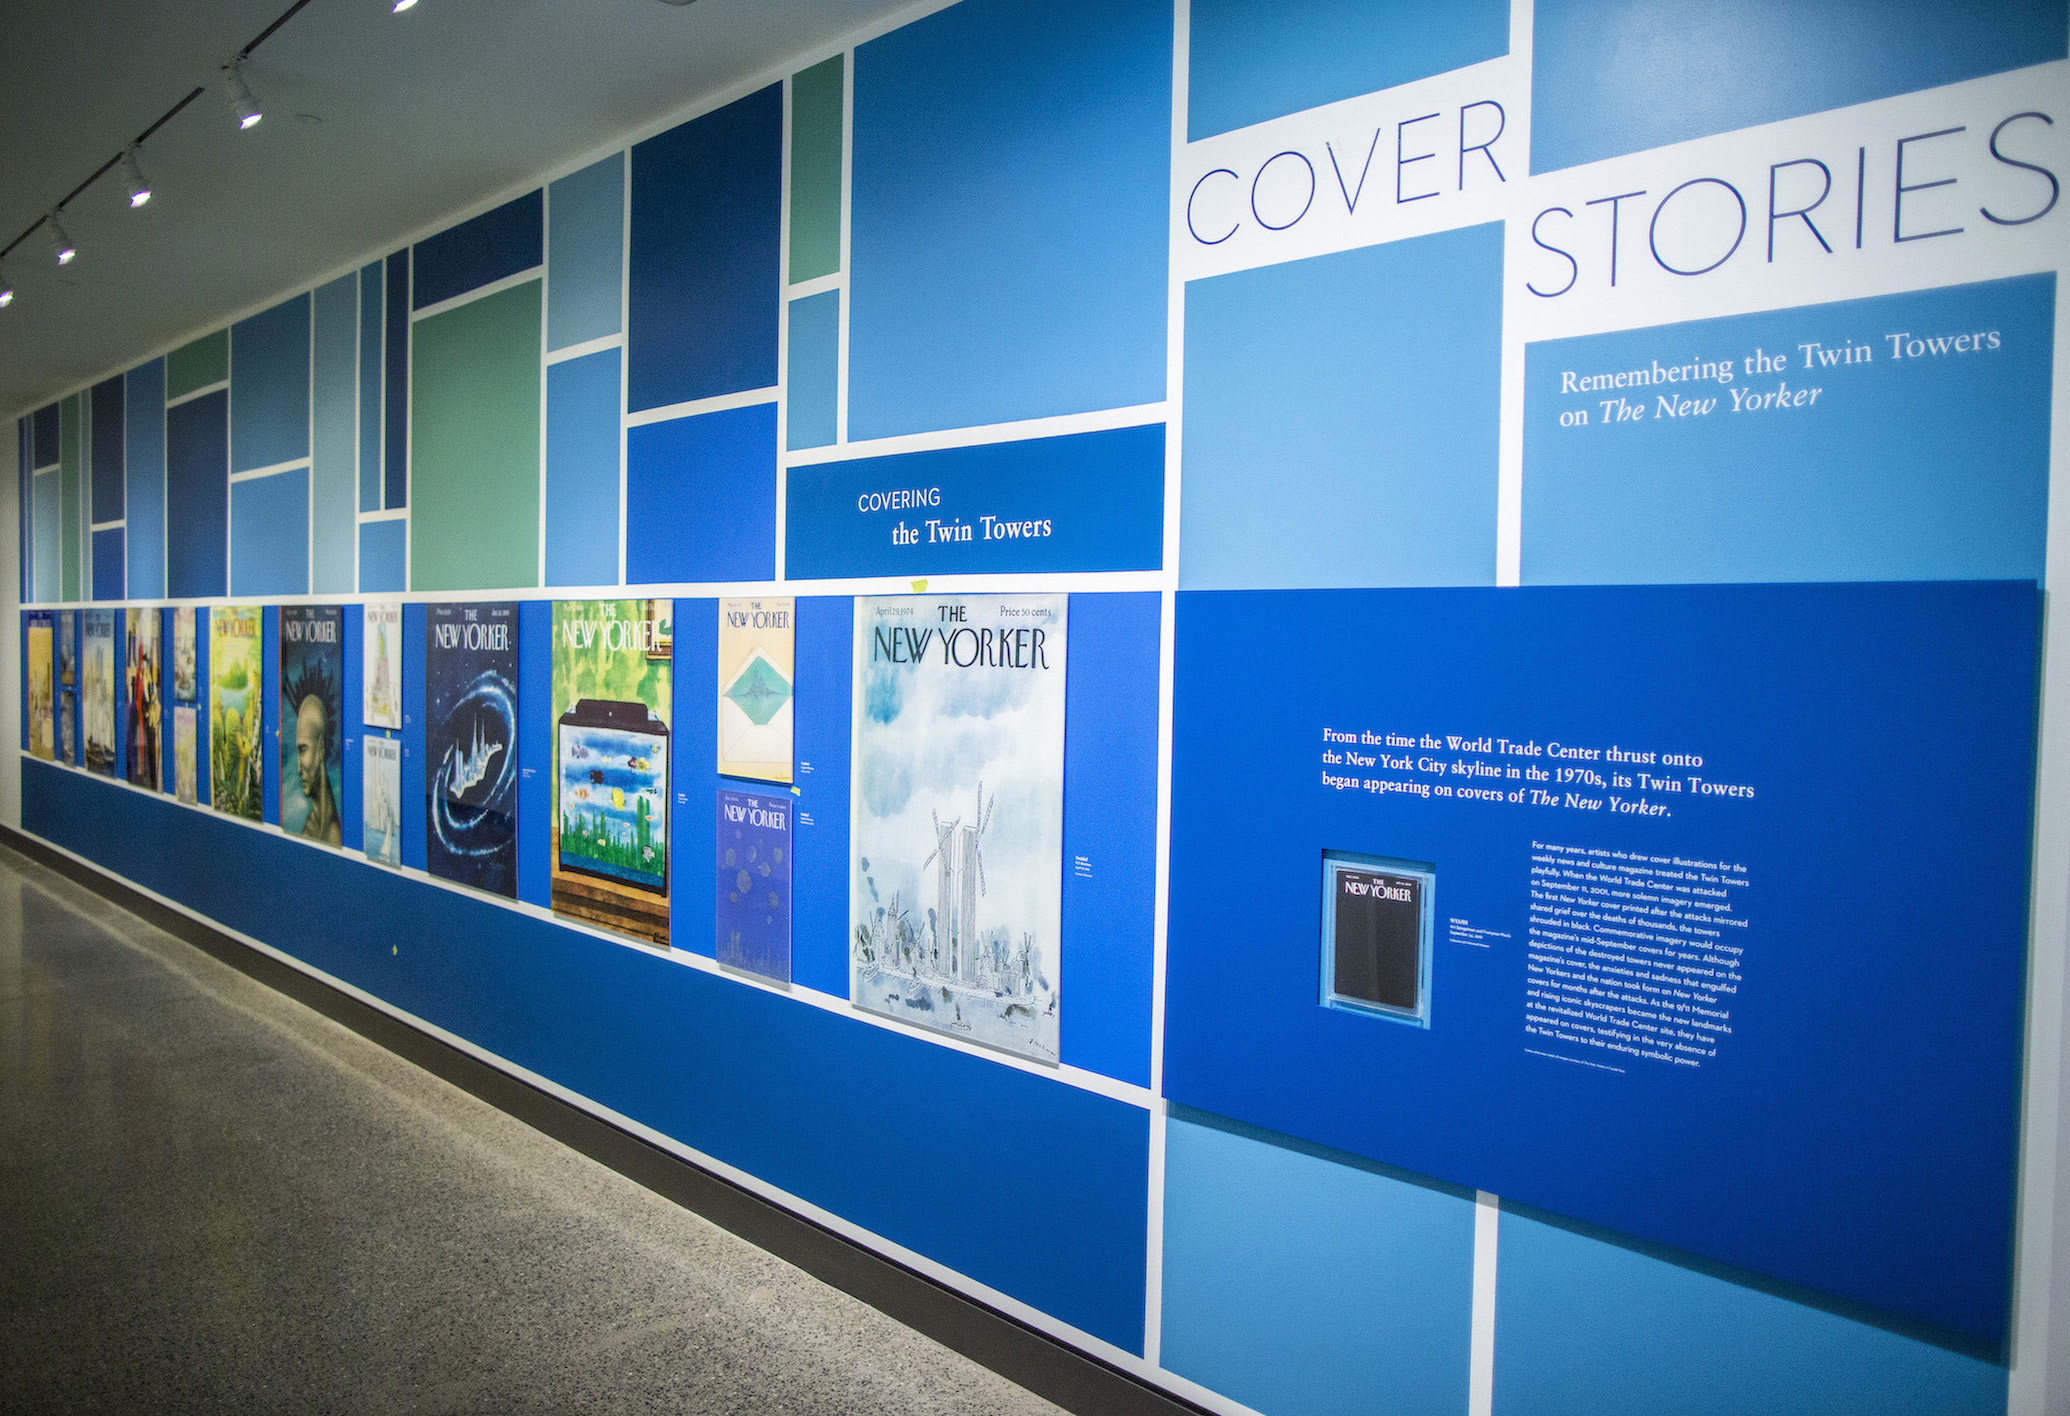 Images of Twin Towers–themed New Yorker covers are displayed on a wall as part of the exhibition Cover Stories.